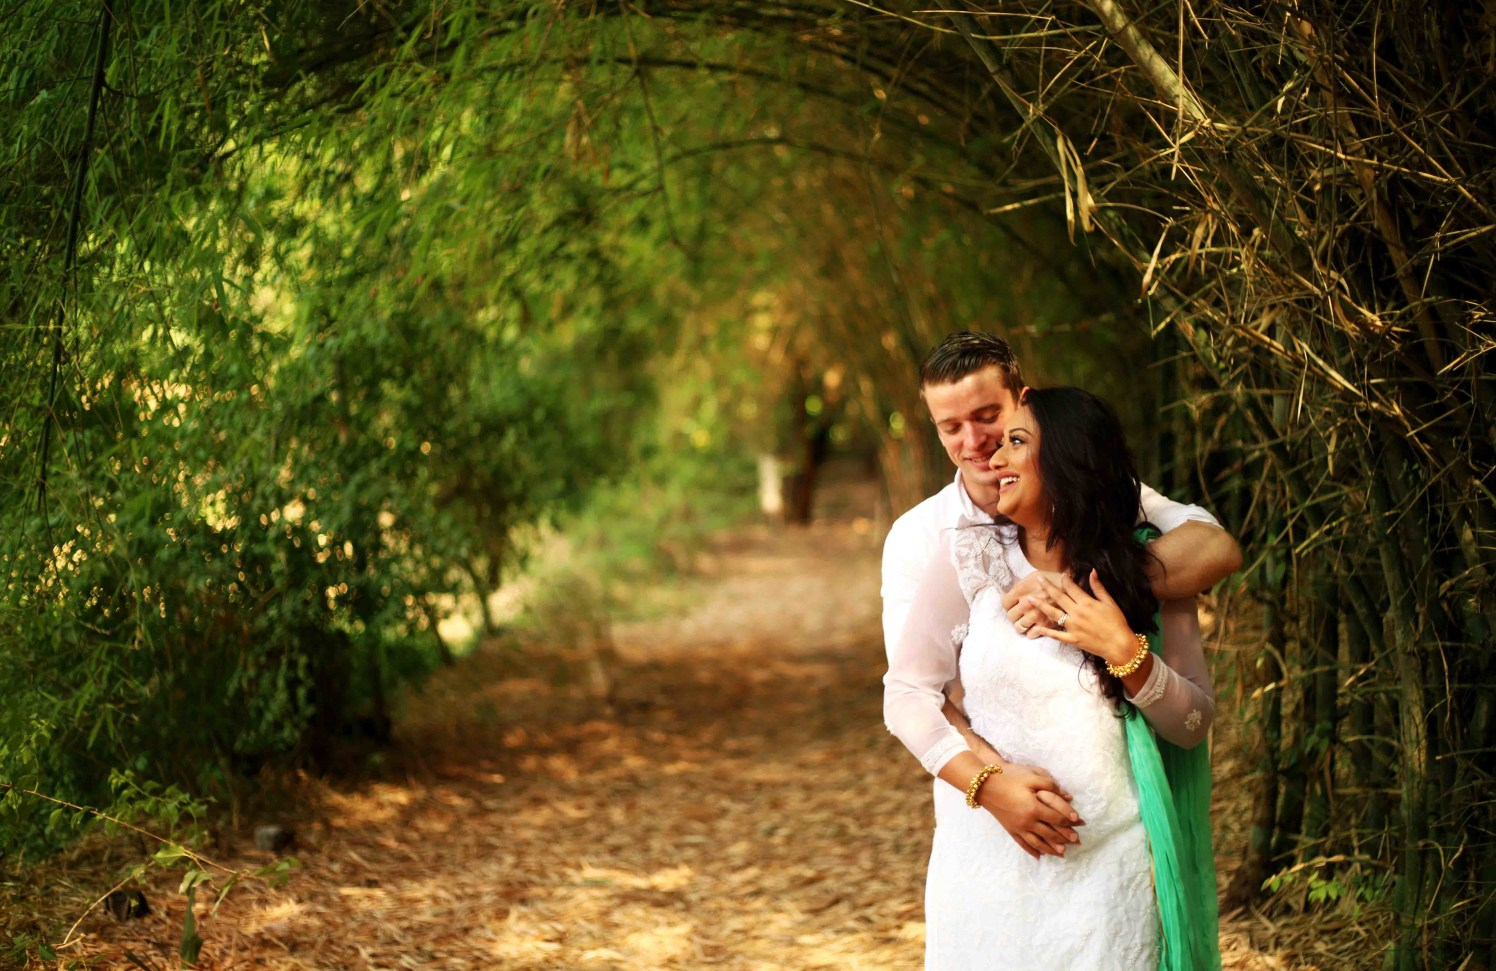 Picturesque happiness by Rushil Jadhav Wedding-photography | Weddings Photos & Ideas